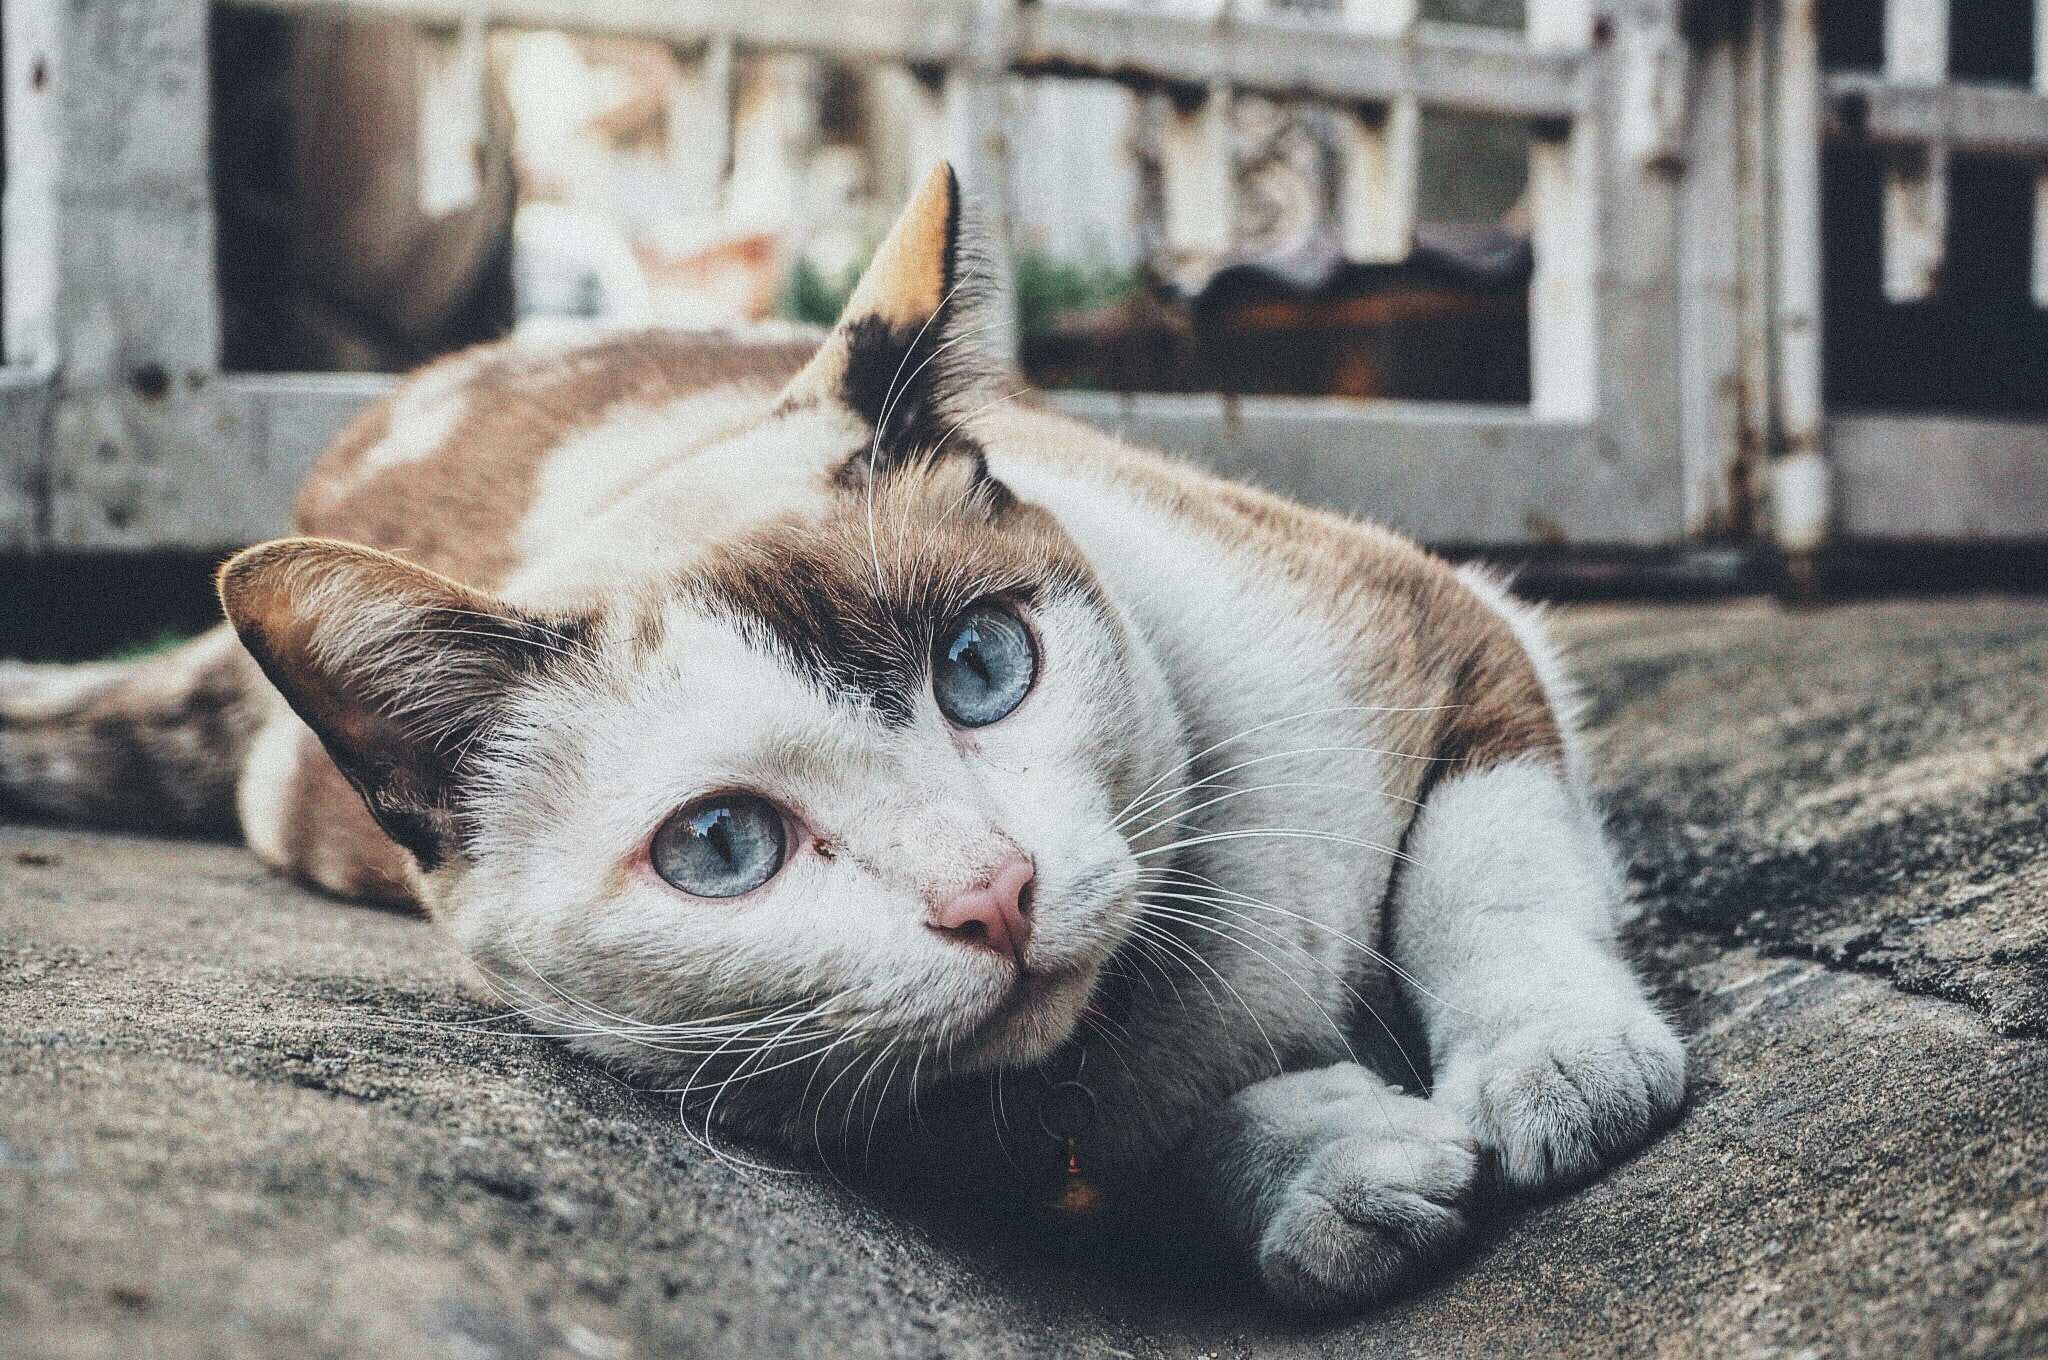 A white and brown cat with big blue eyes and a cat bell on its collar lying on the ground